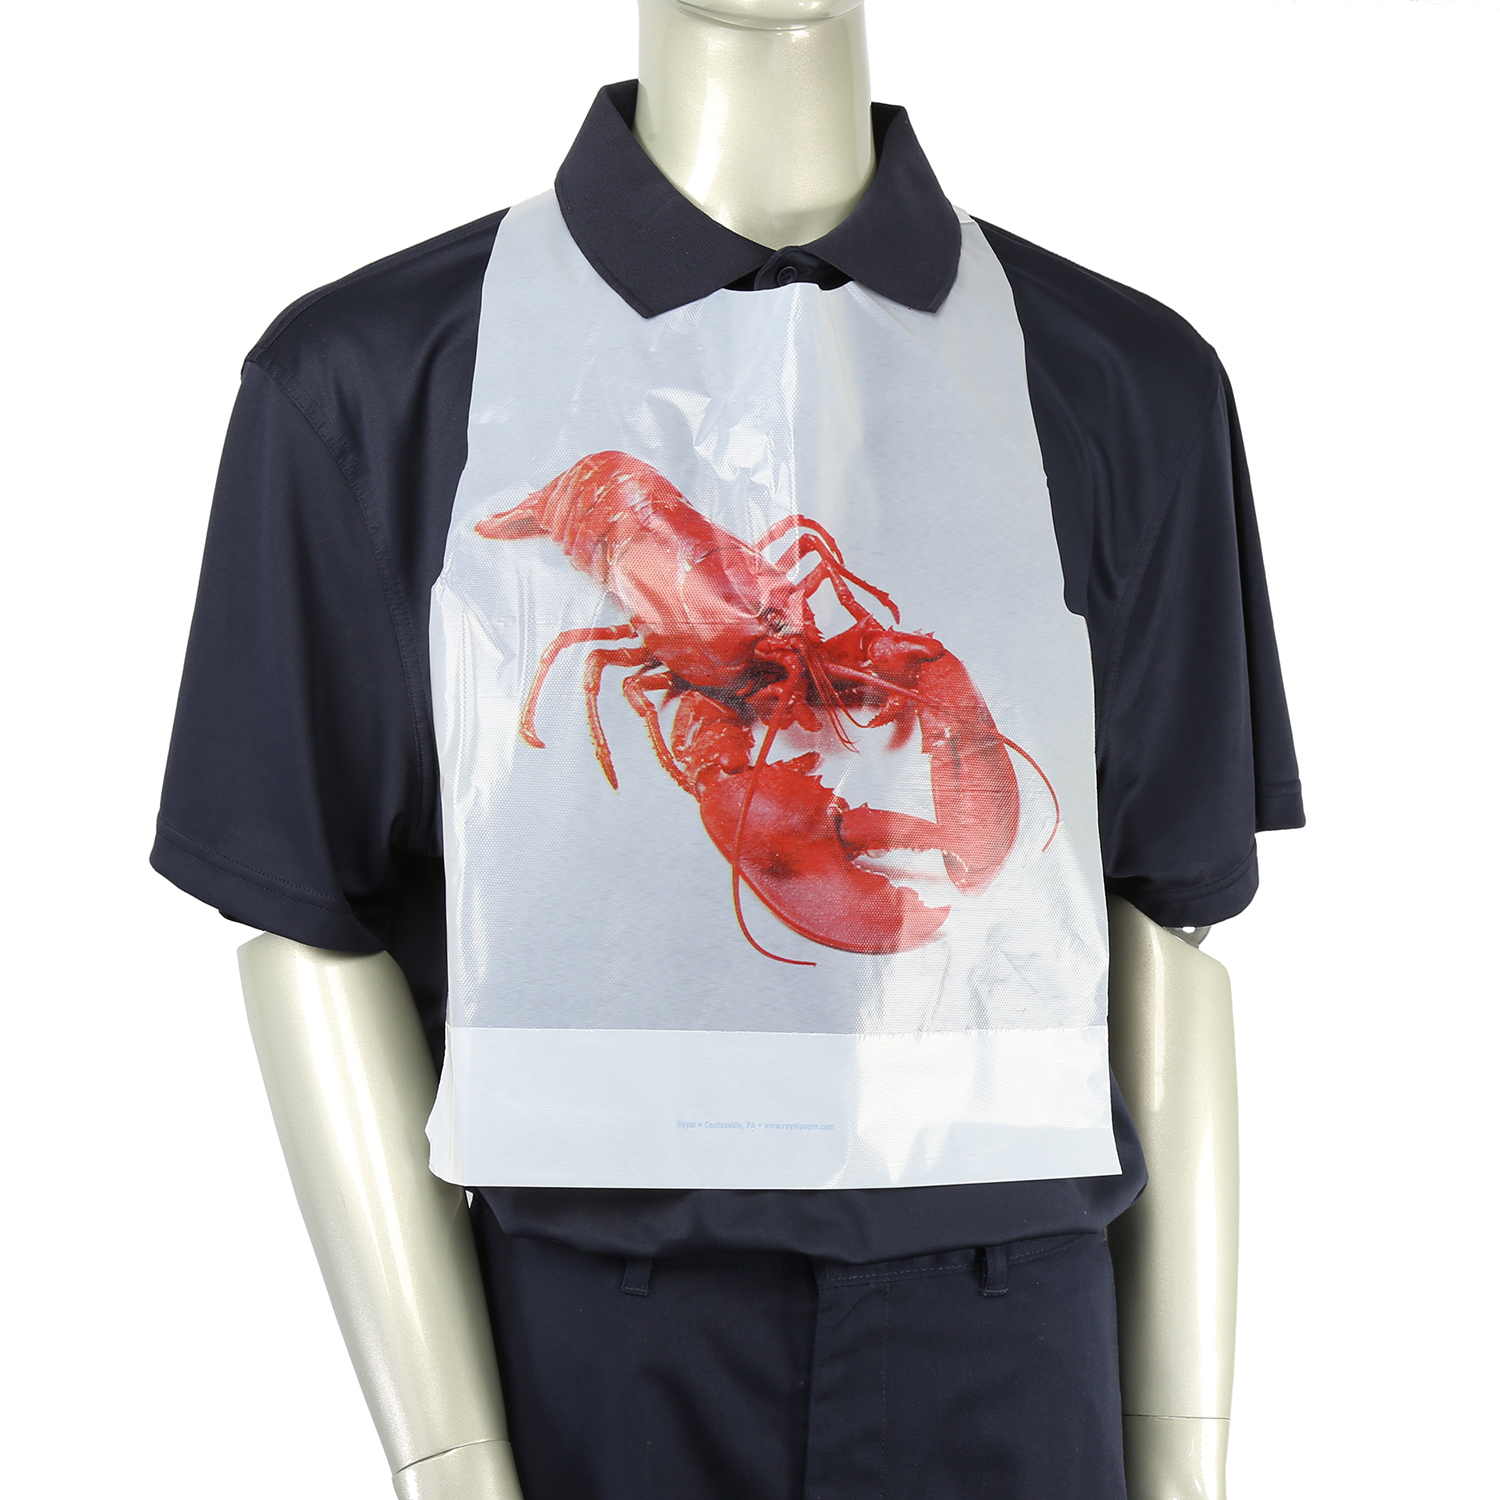 Royal Adult Poly Bibs with Lobster Design, Case of 2,500